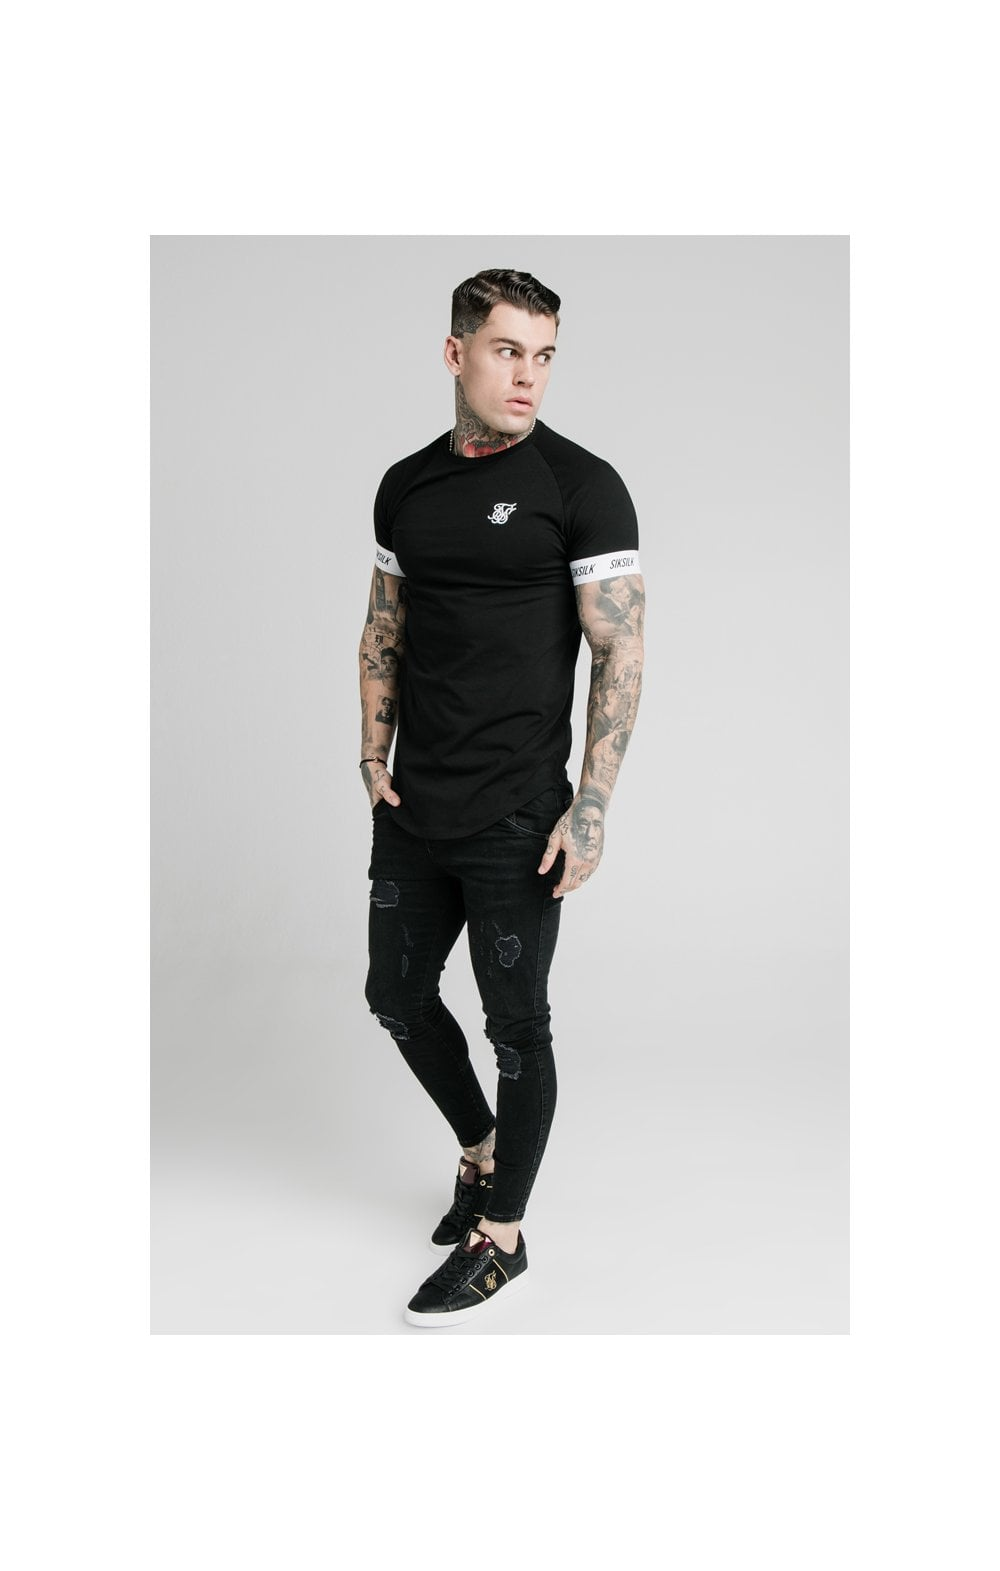 SikSilk S/S Raglan Tech Tee - Black (3)